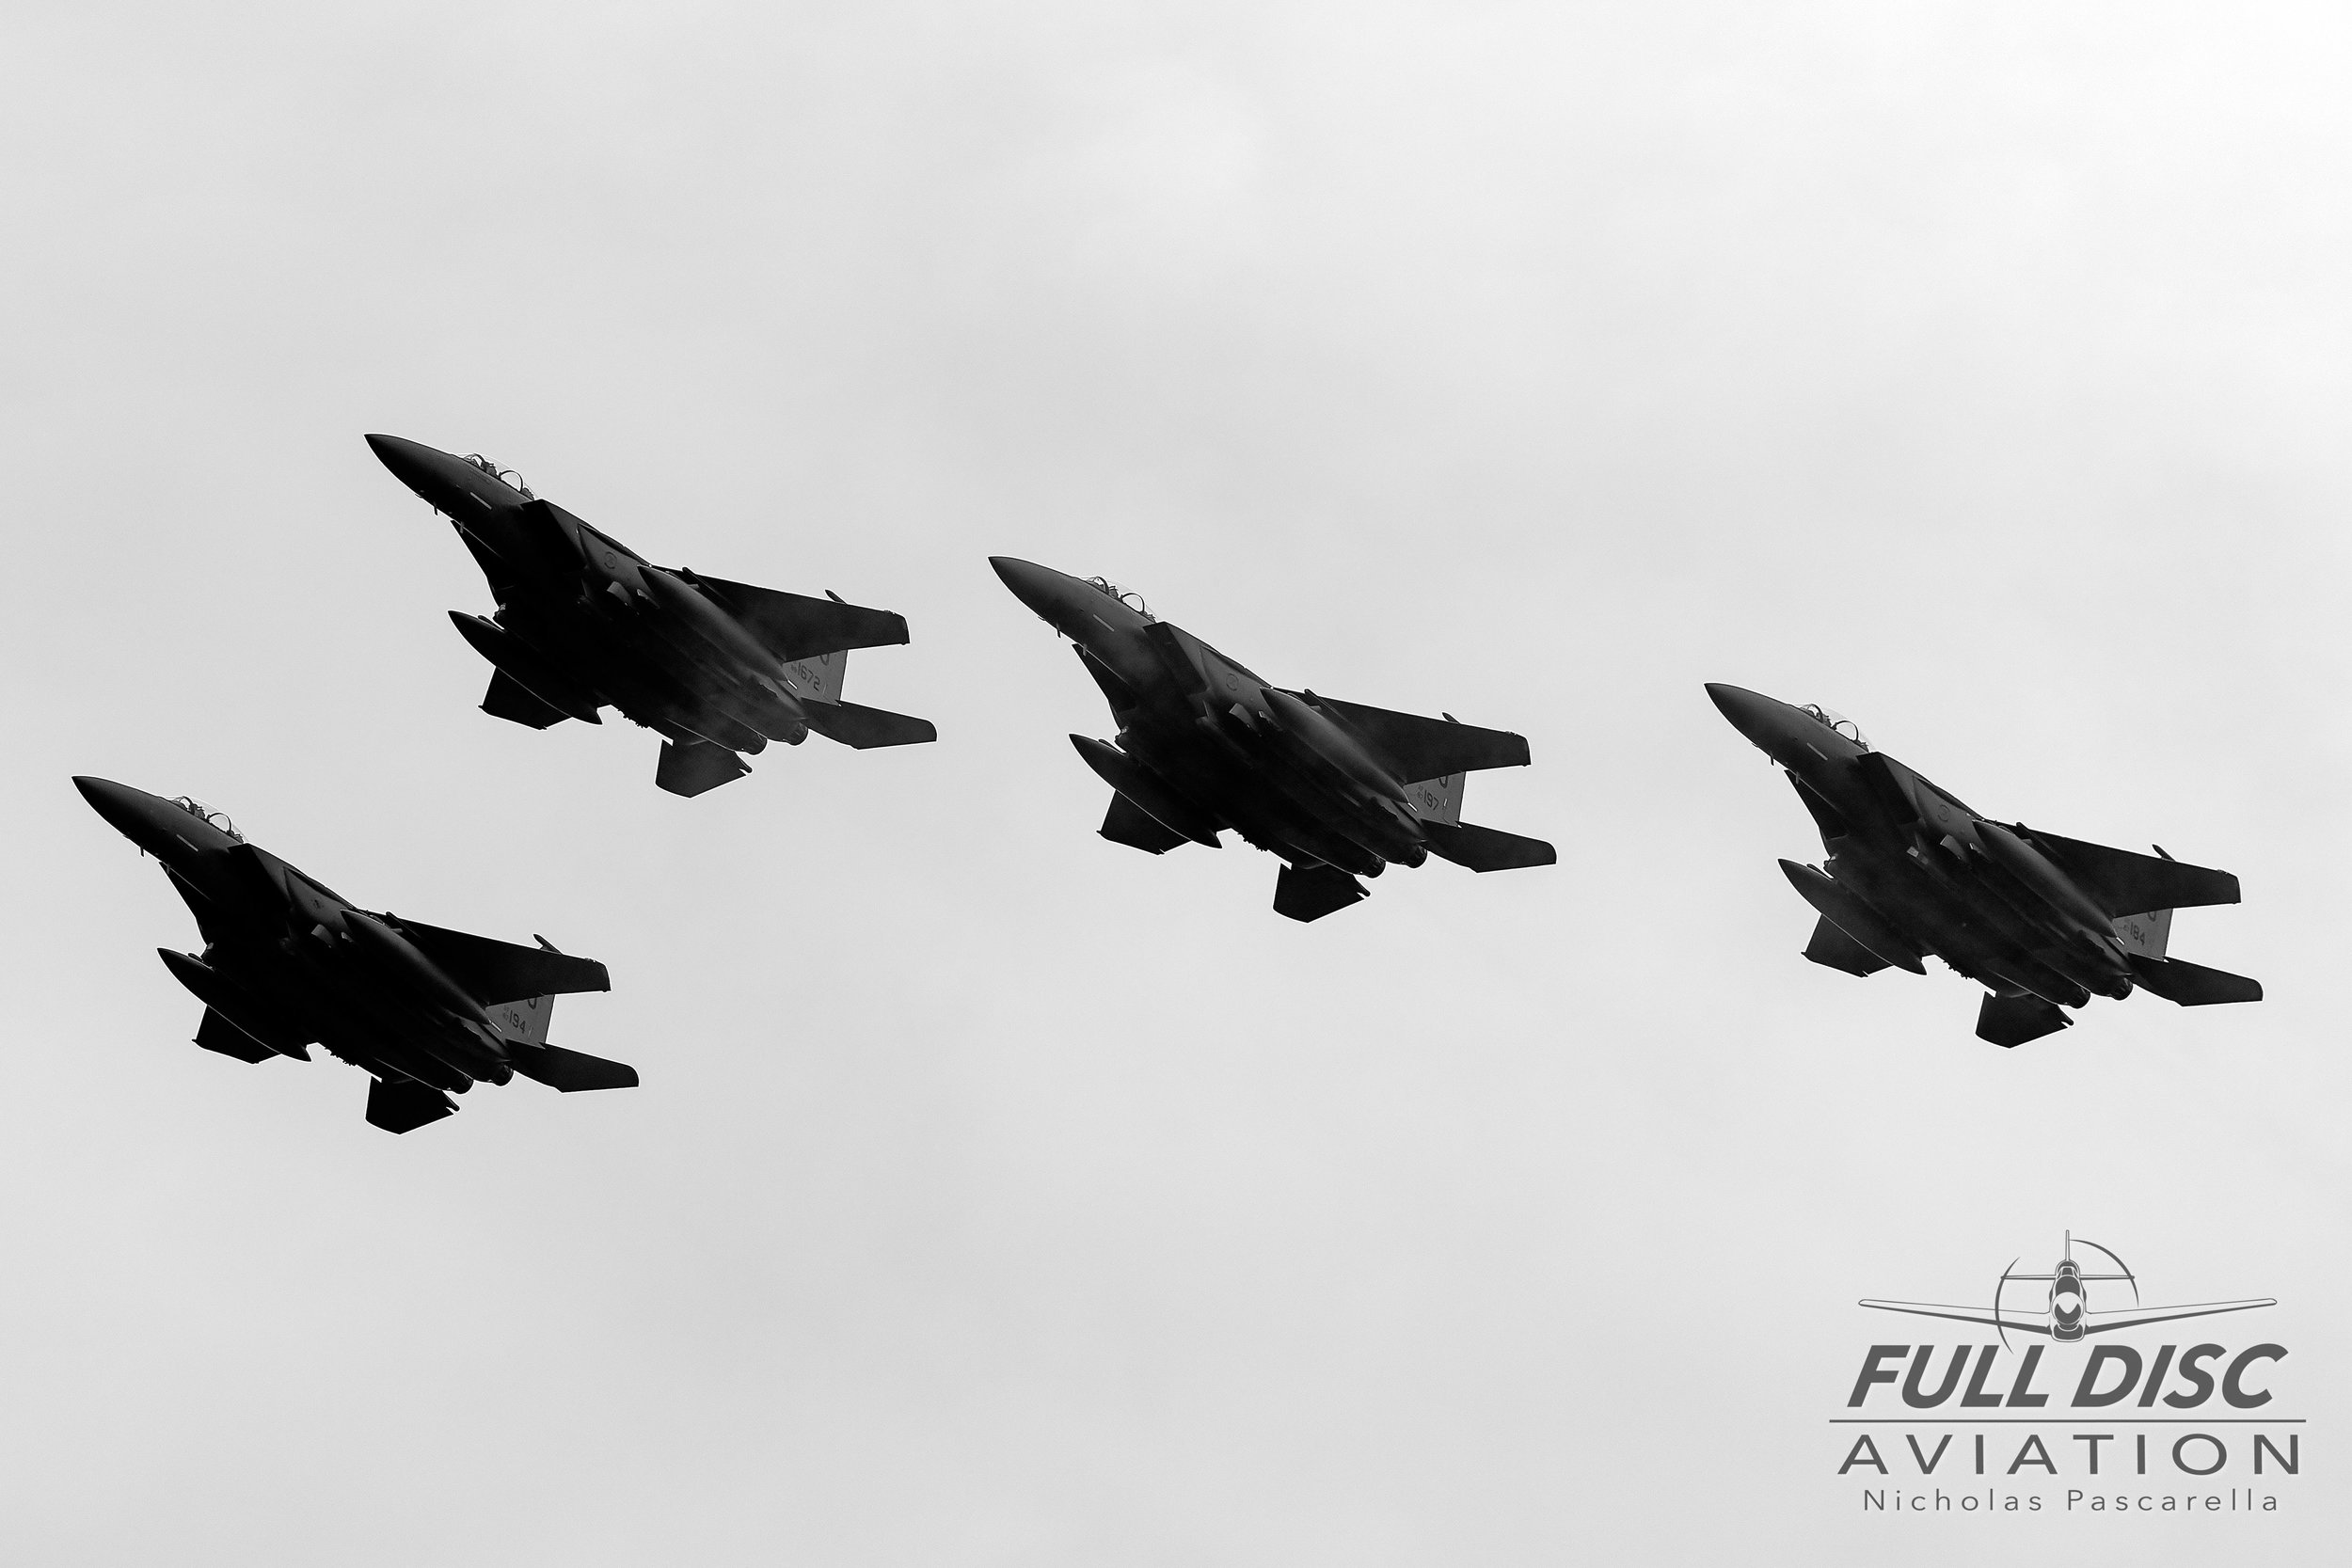 wingsoverwayne_seymourjohnsonafb_strikeeagle_f15_fingerfour_nicholaspascarella_fulldiscavation_aviation_airshow.jpg